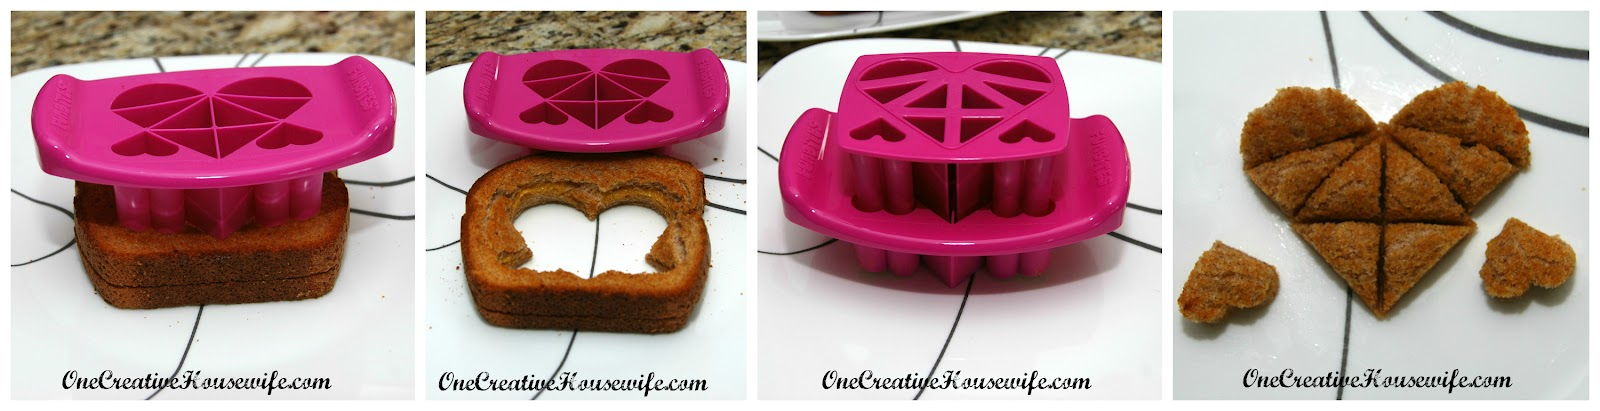 One creative housewife funbites heart cutter review for Funbites